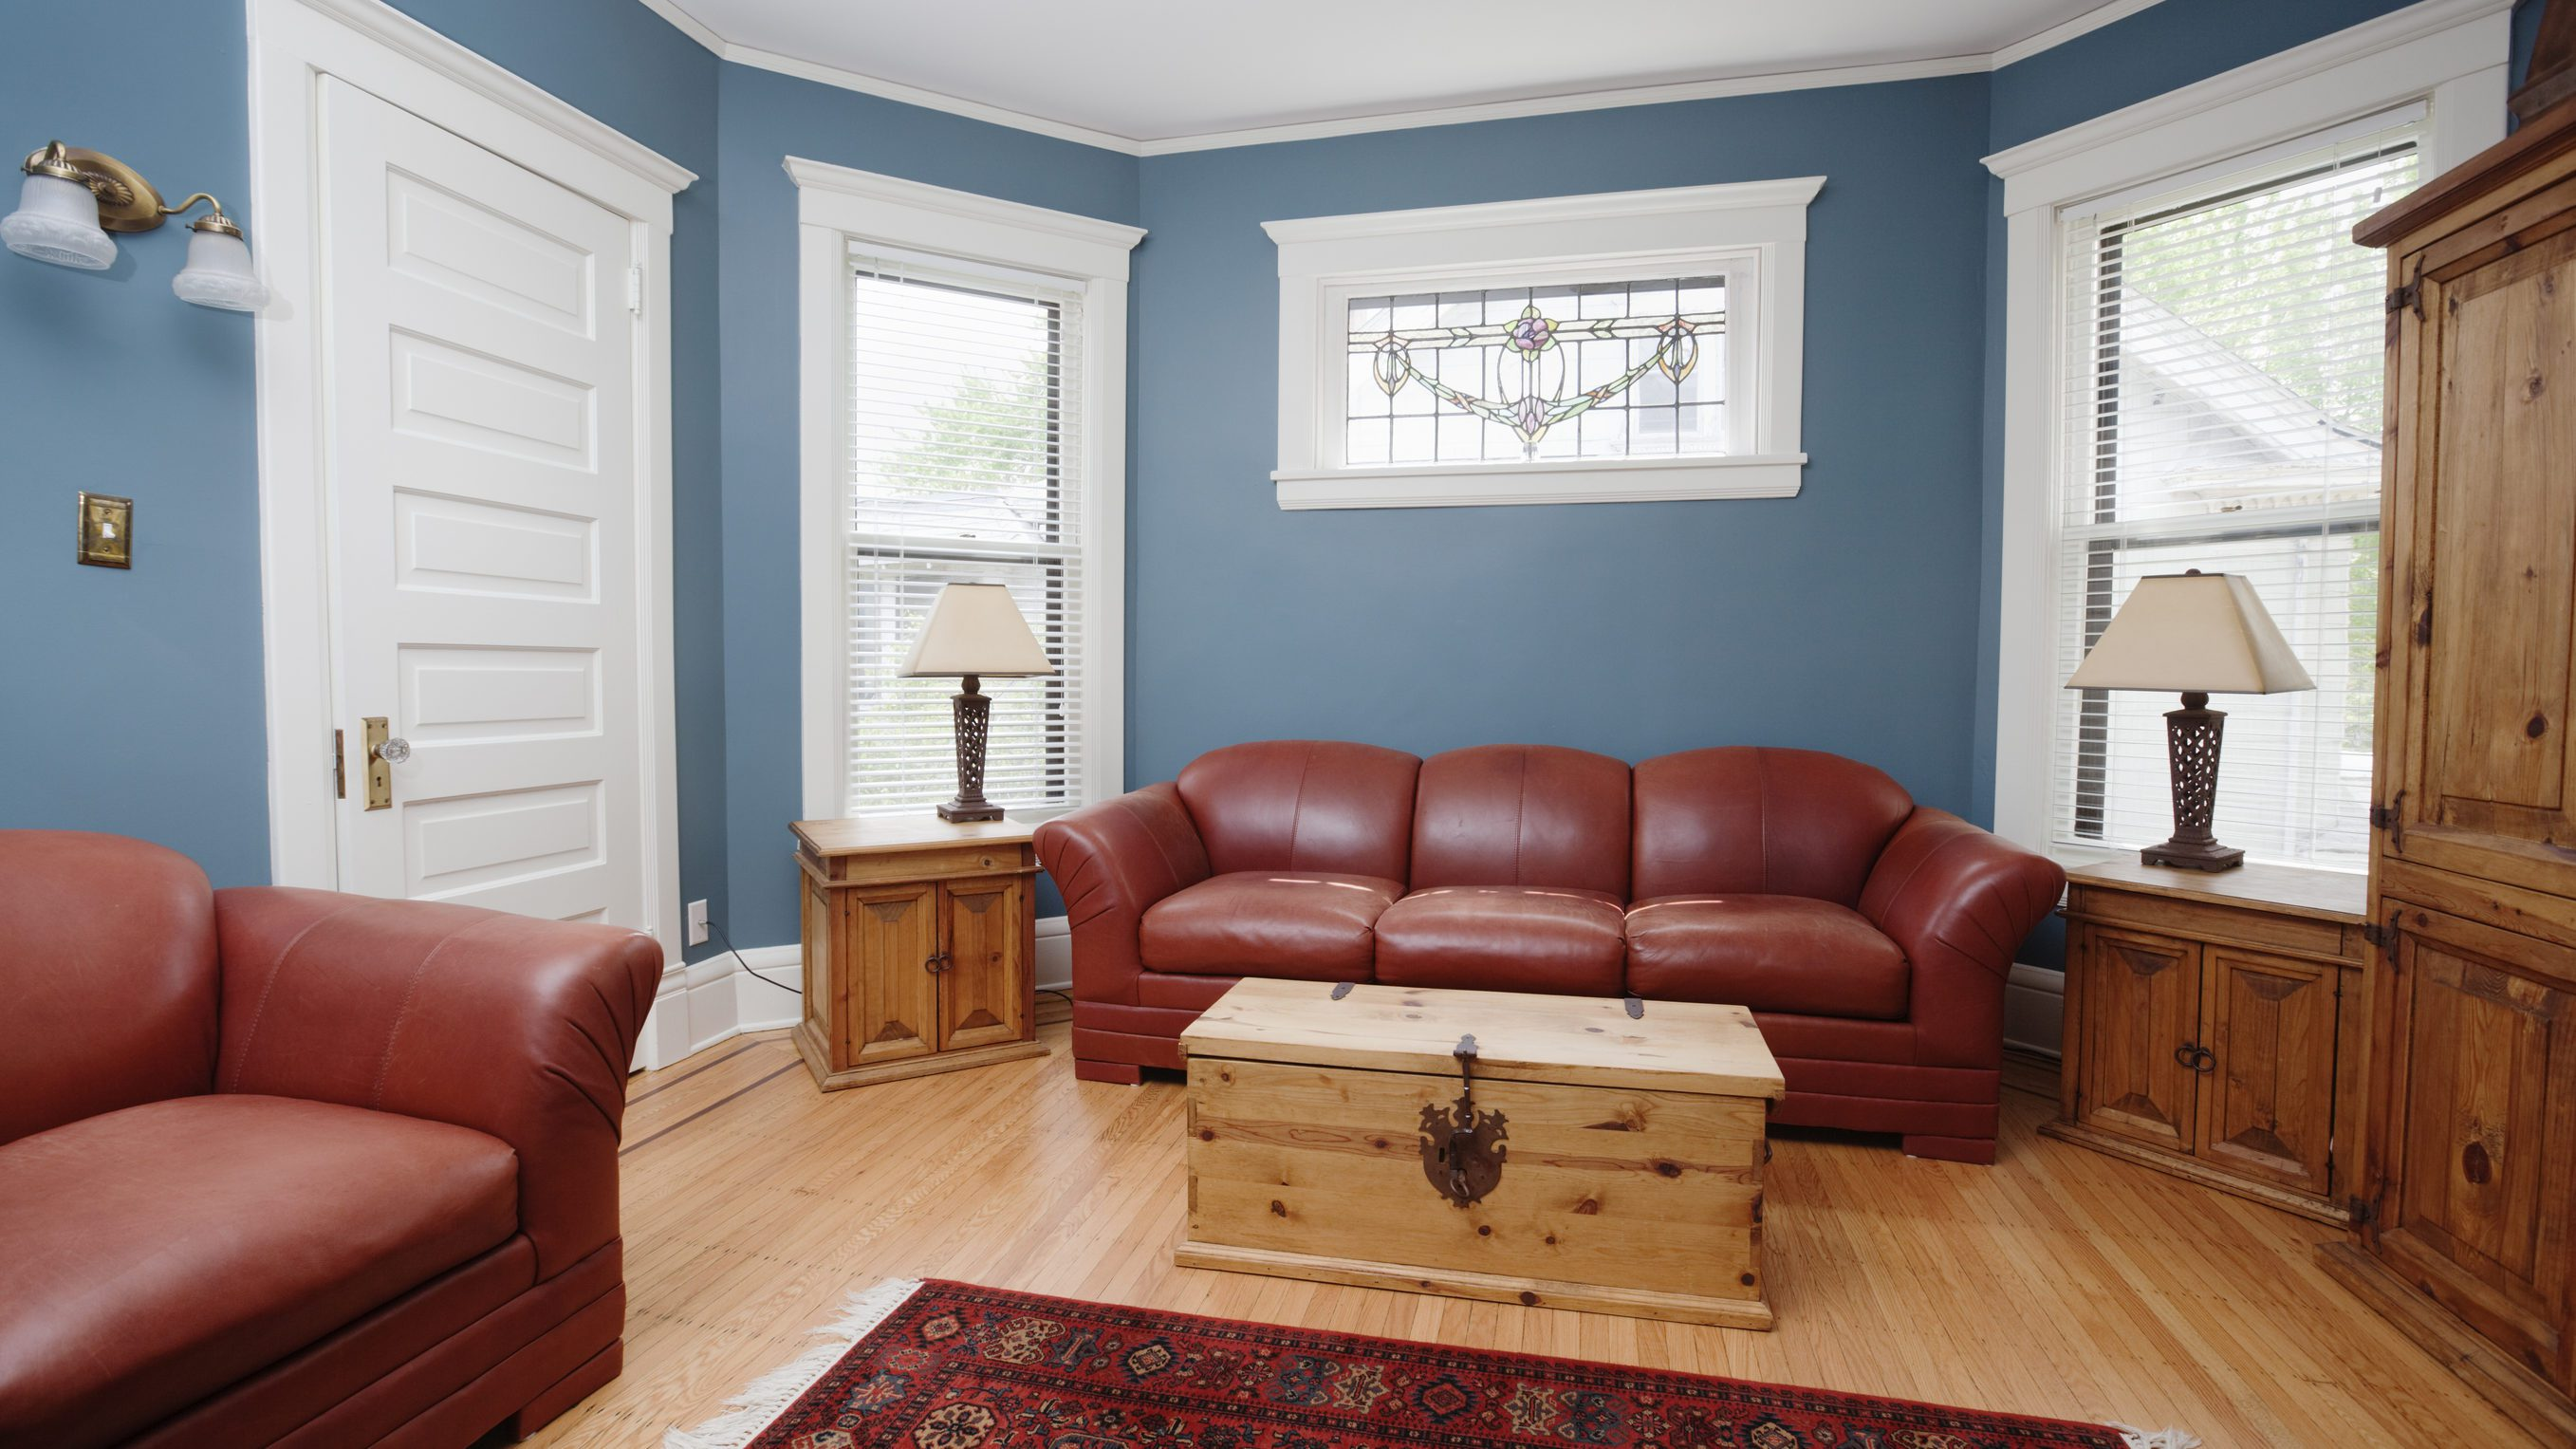 Southwest Style Living Room Furniture in a Traditional ...